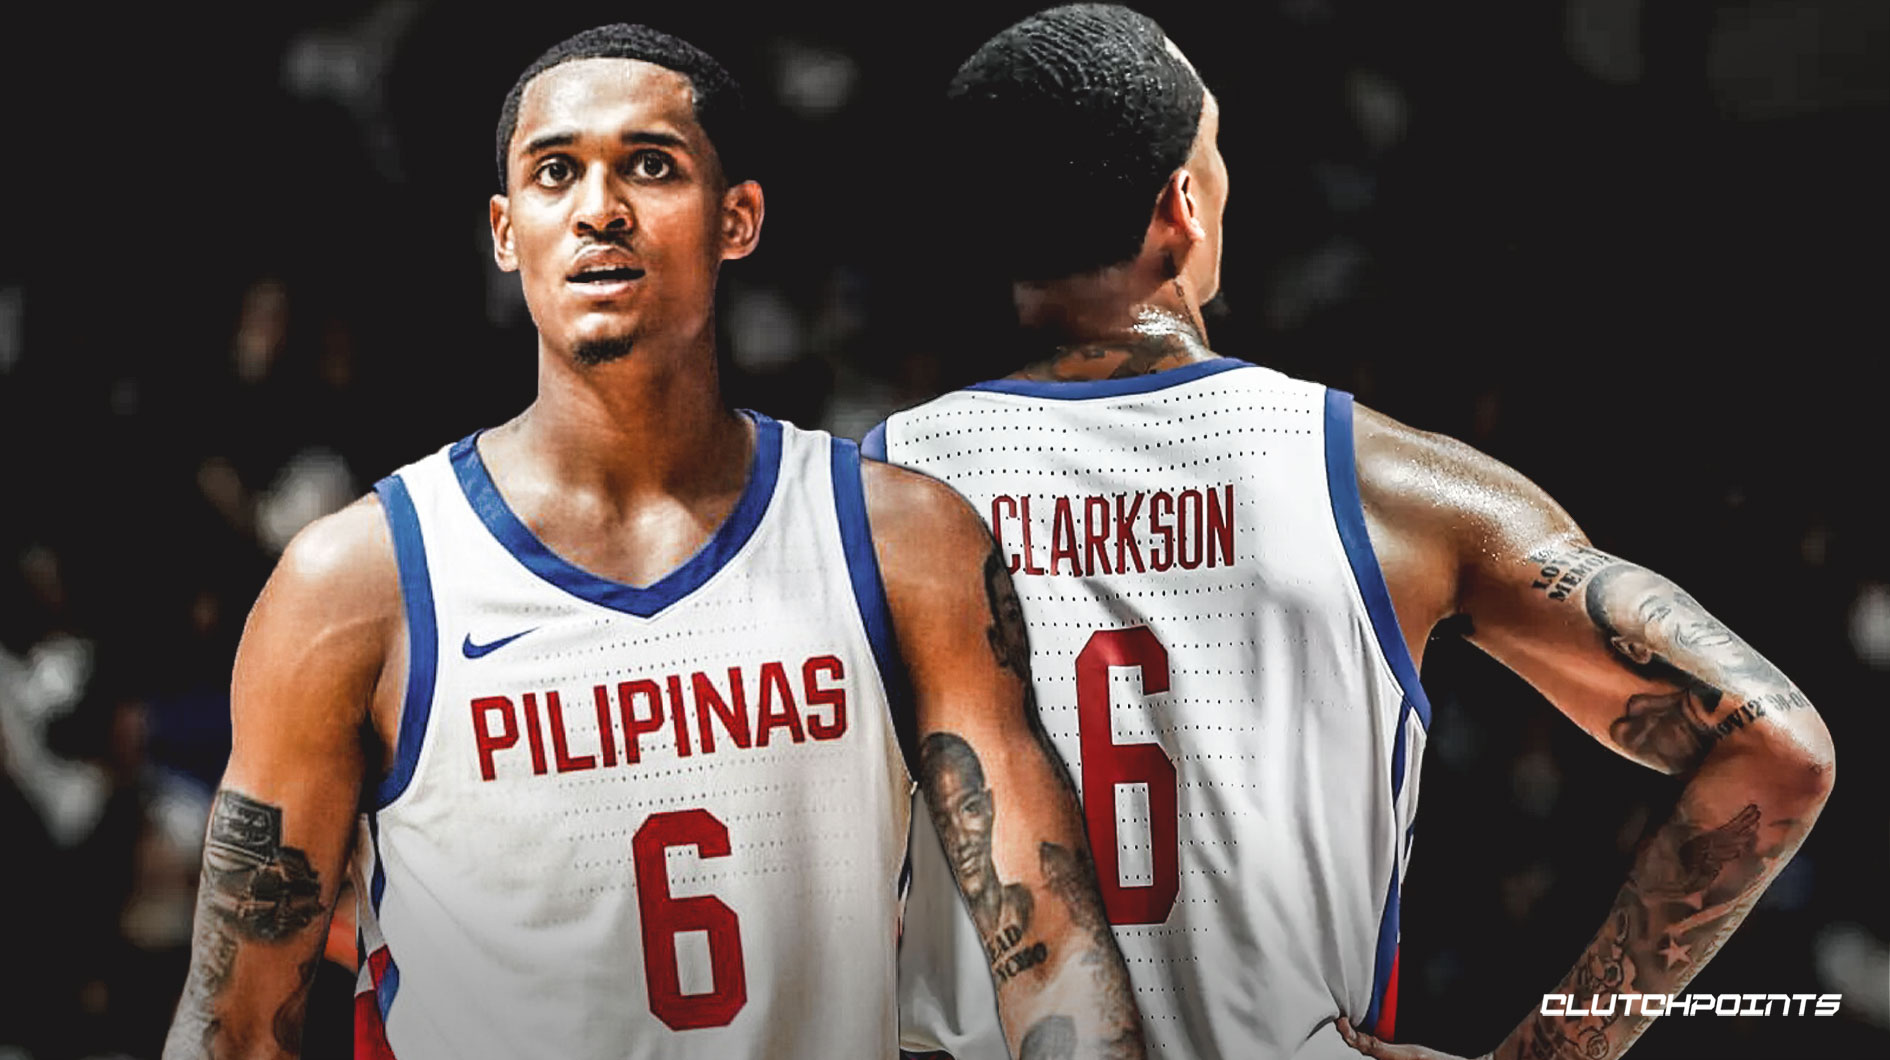 separation shoes a47e0 75880 Cavs news: Philippines gearing up for push to have Jordan ...